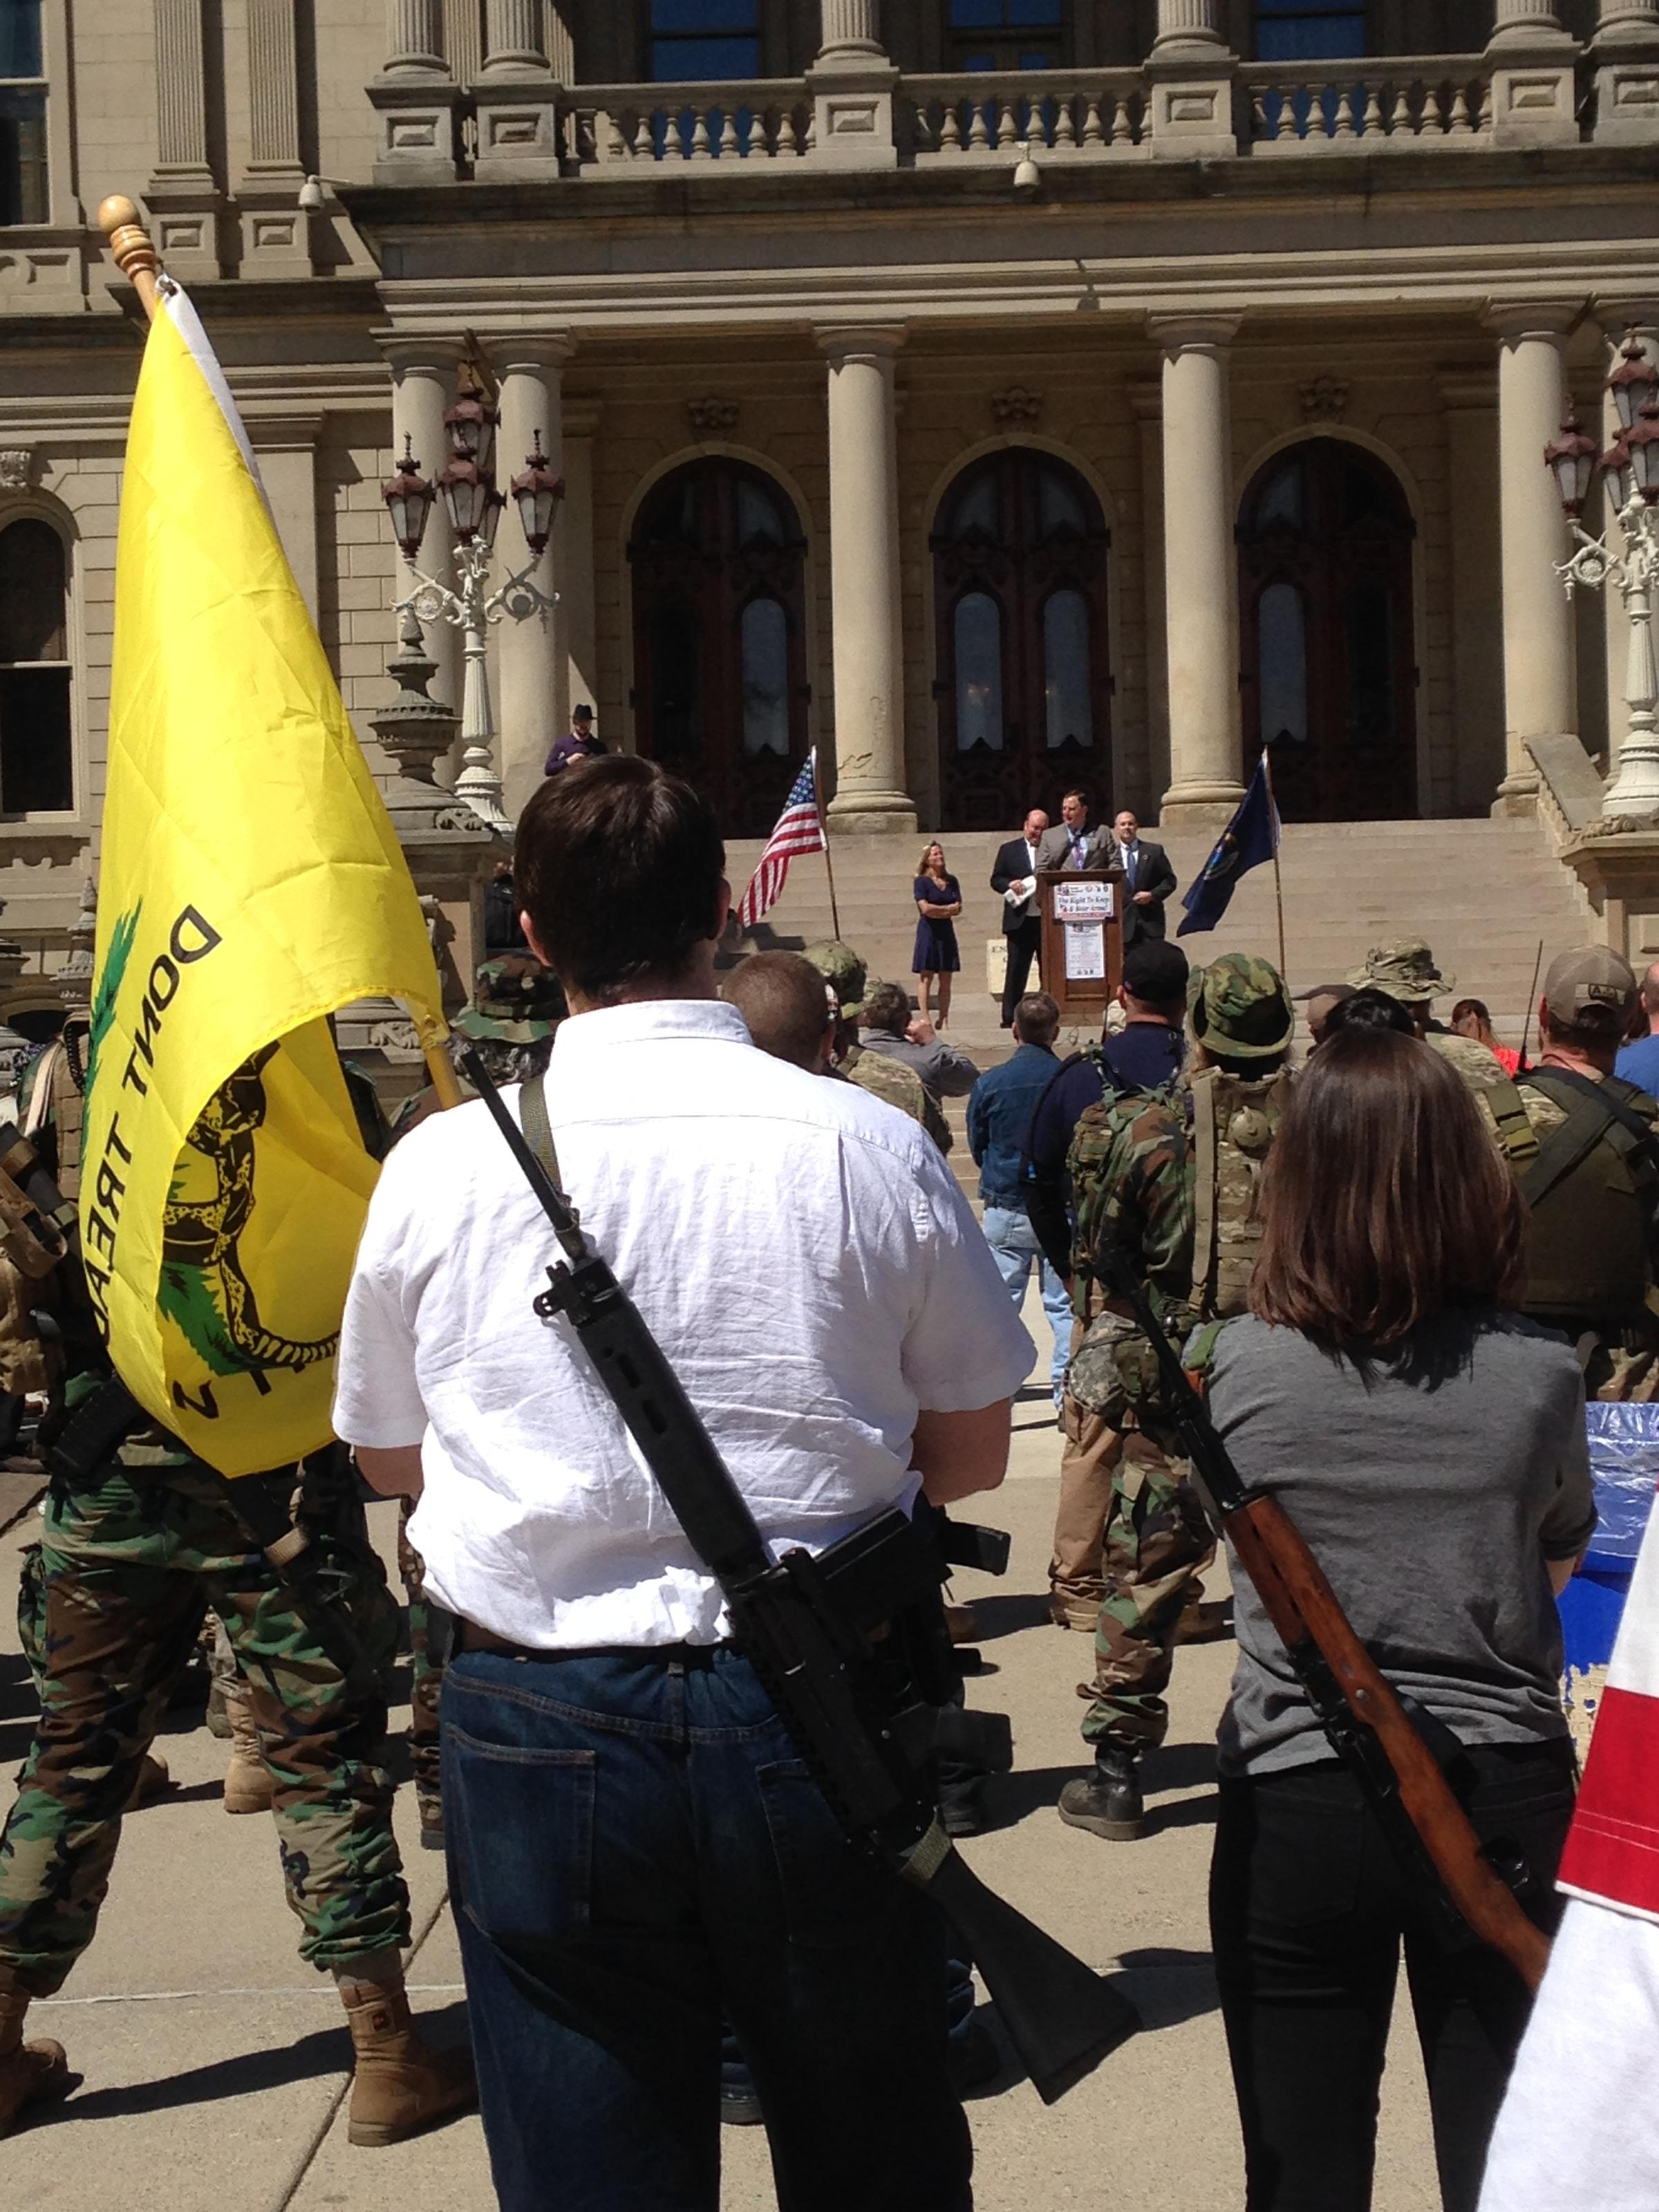 Snyder Renews Opposition To Open Carry In Schools As Pro